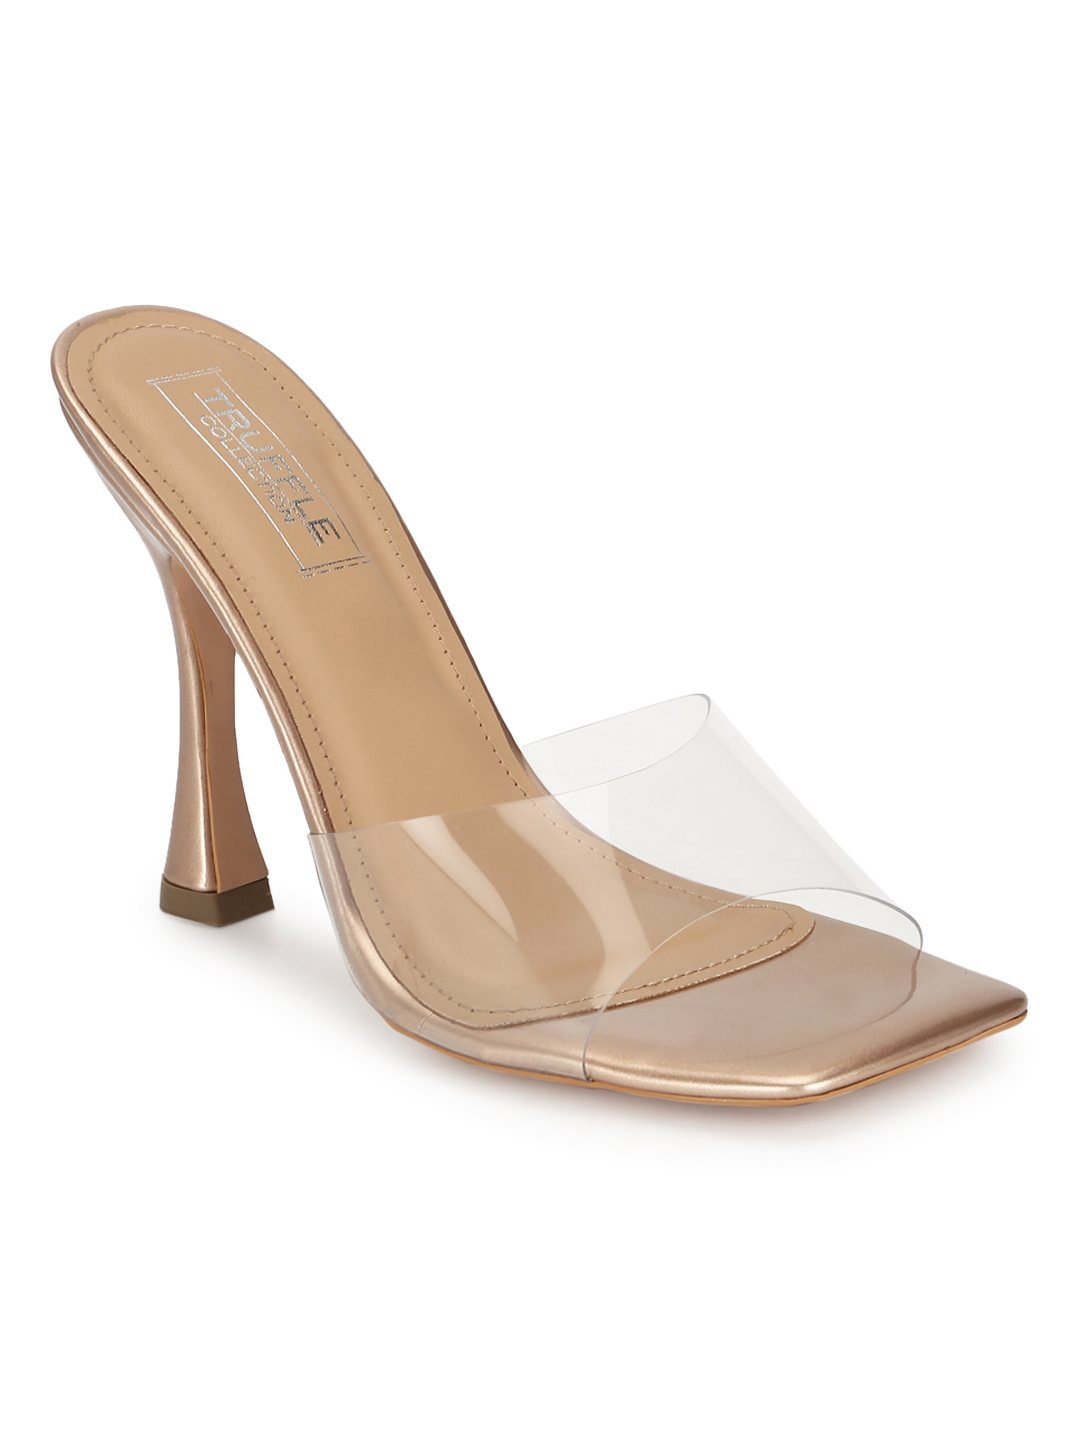 Truffle Collection | Rosegold Patent Perspex Stiletto Sandals